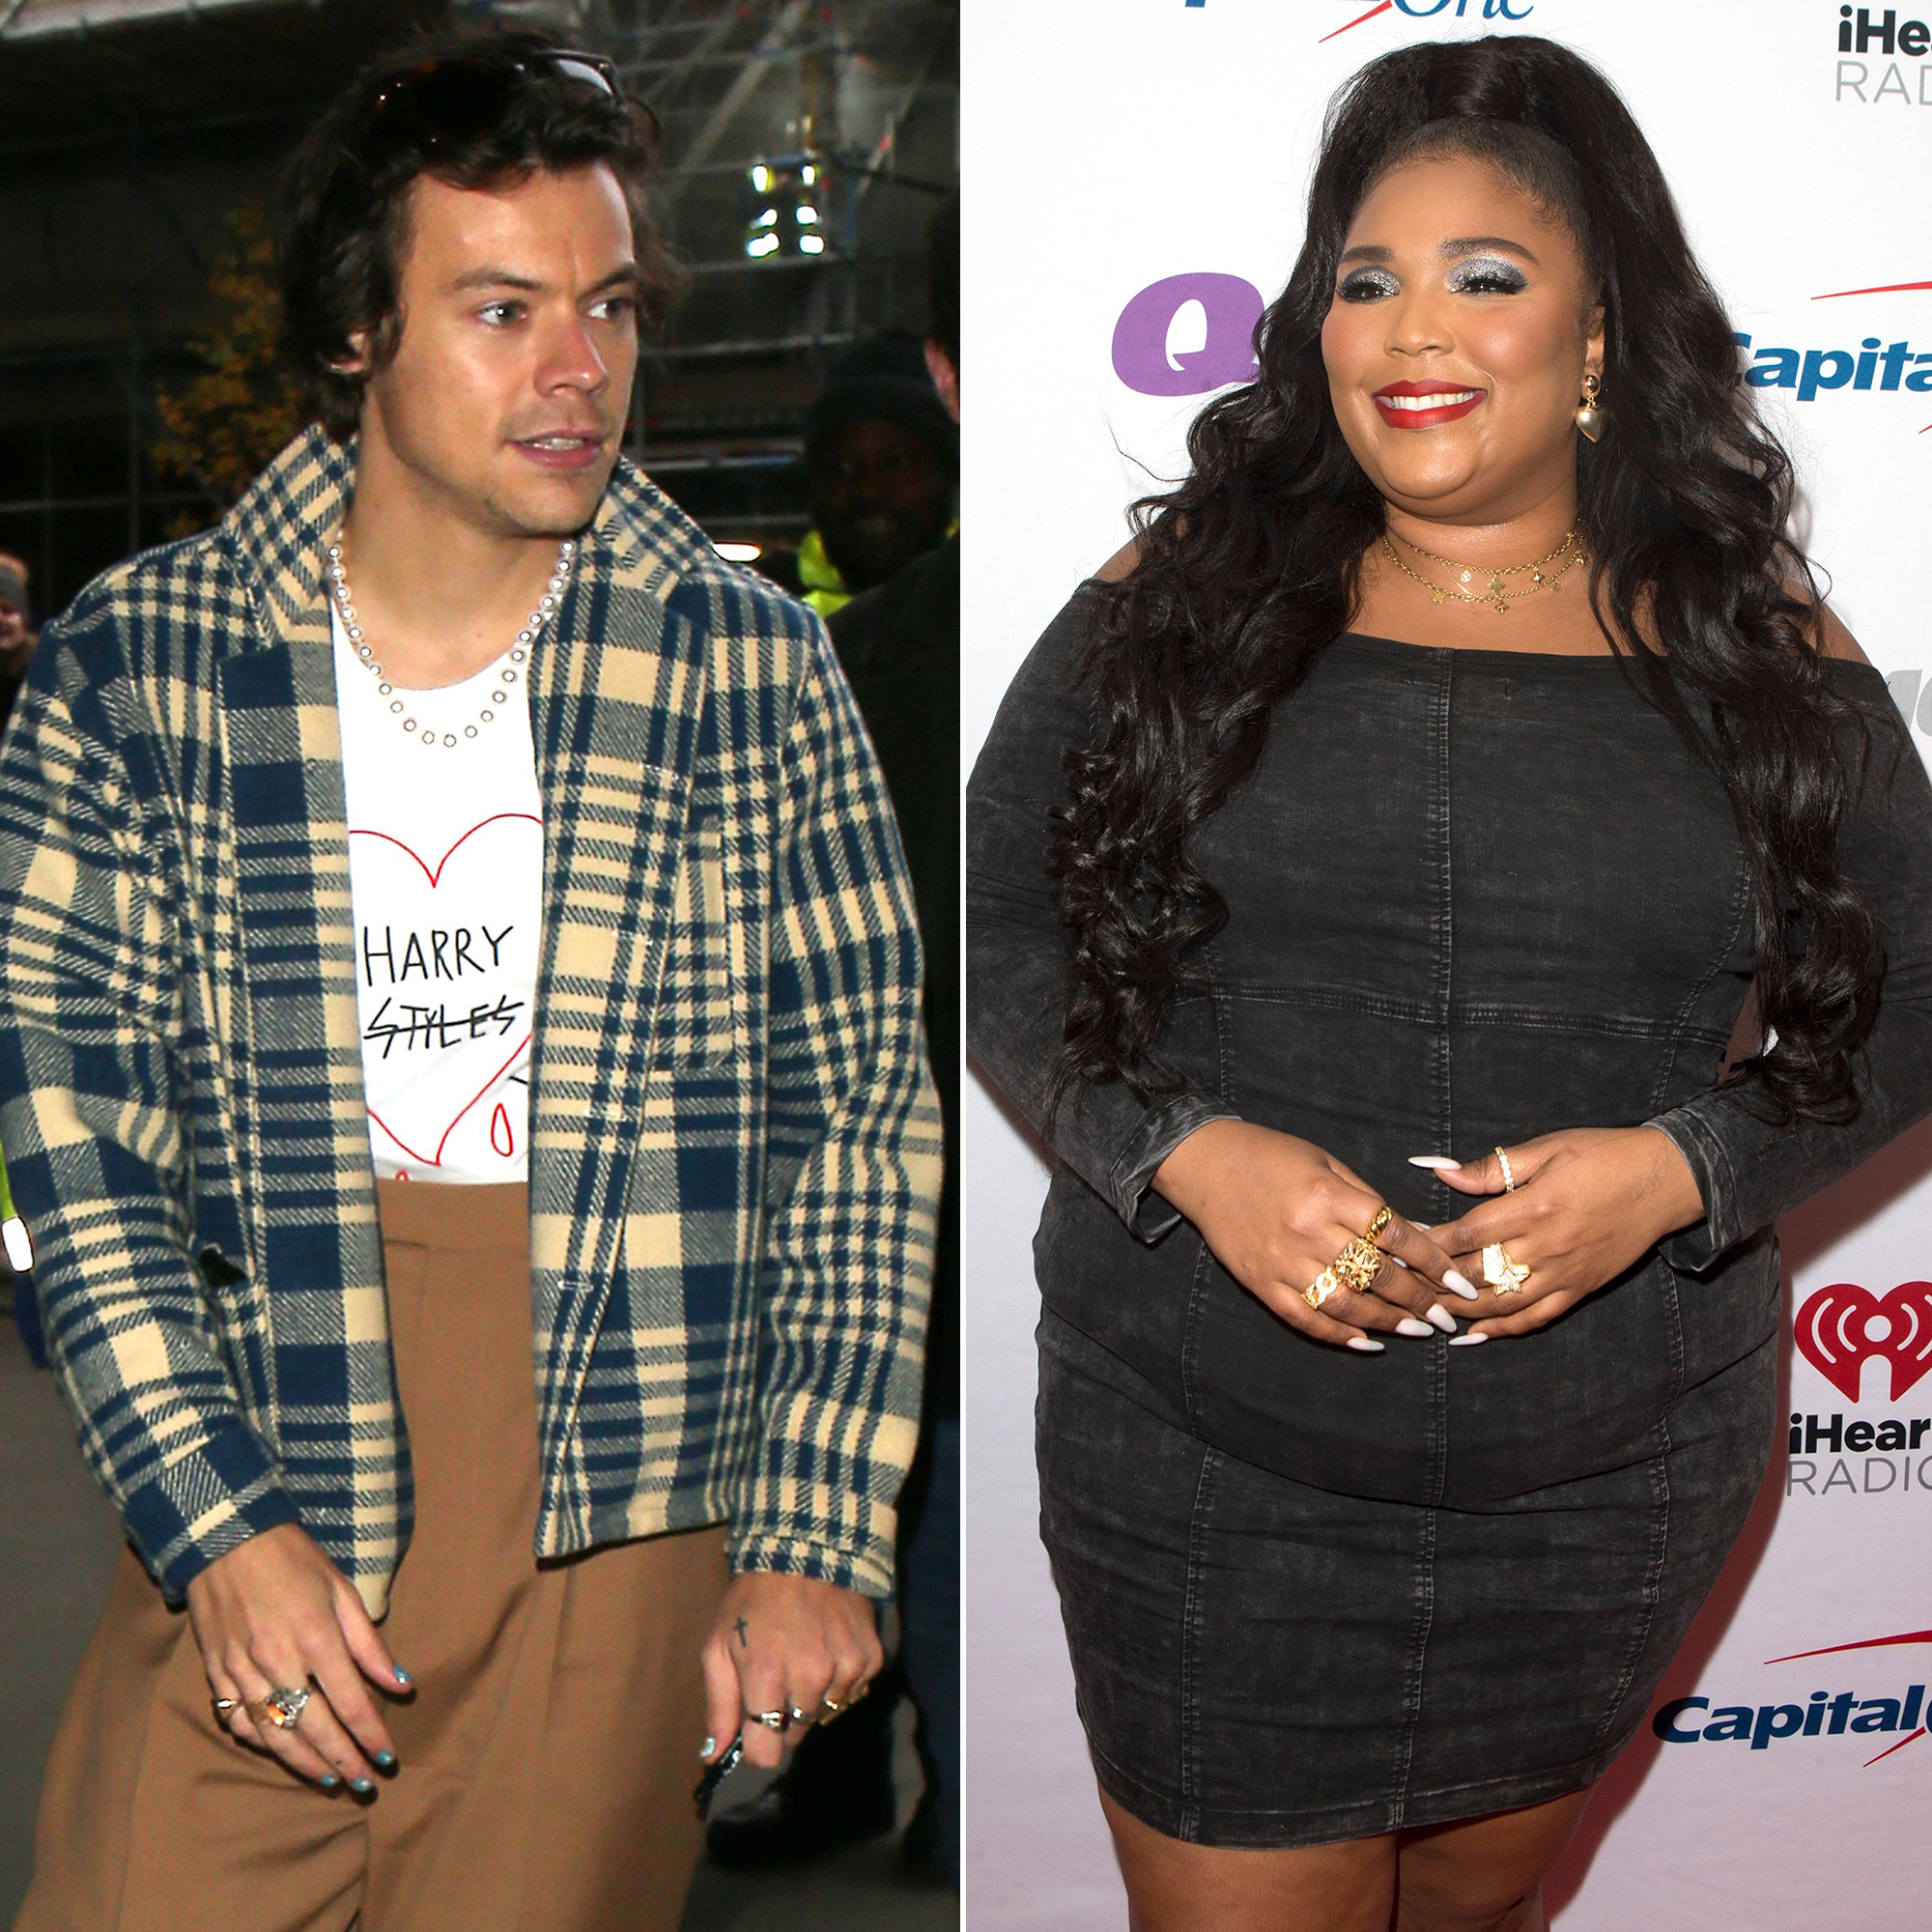 Lizzo Juice: Harry Styles Covering Lizzo's 'Juice' Is The Only Thing